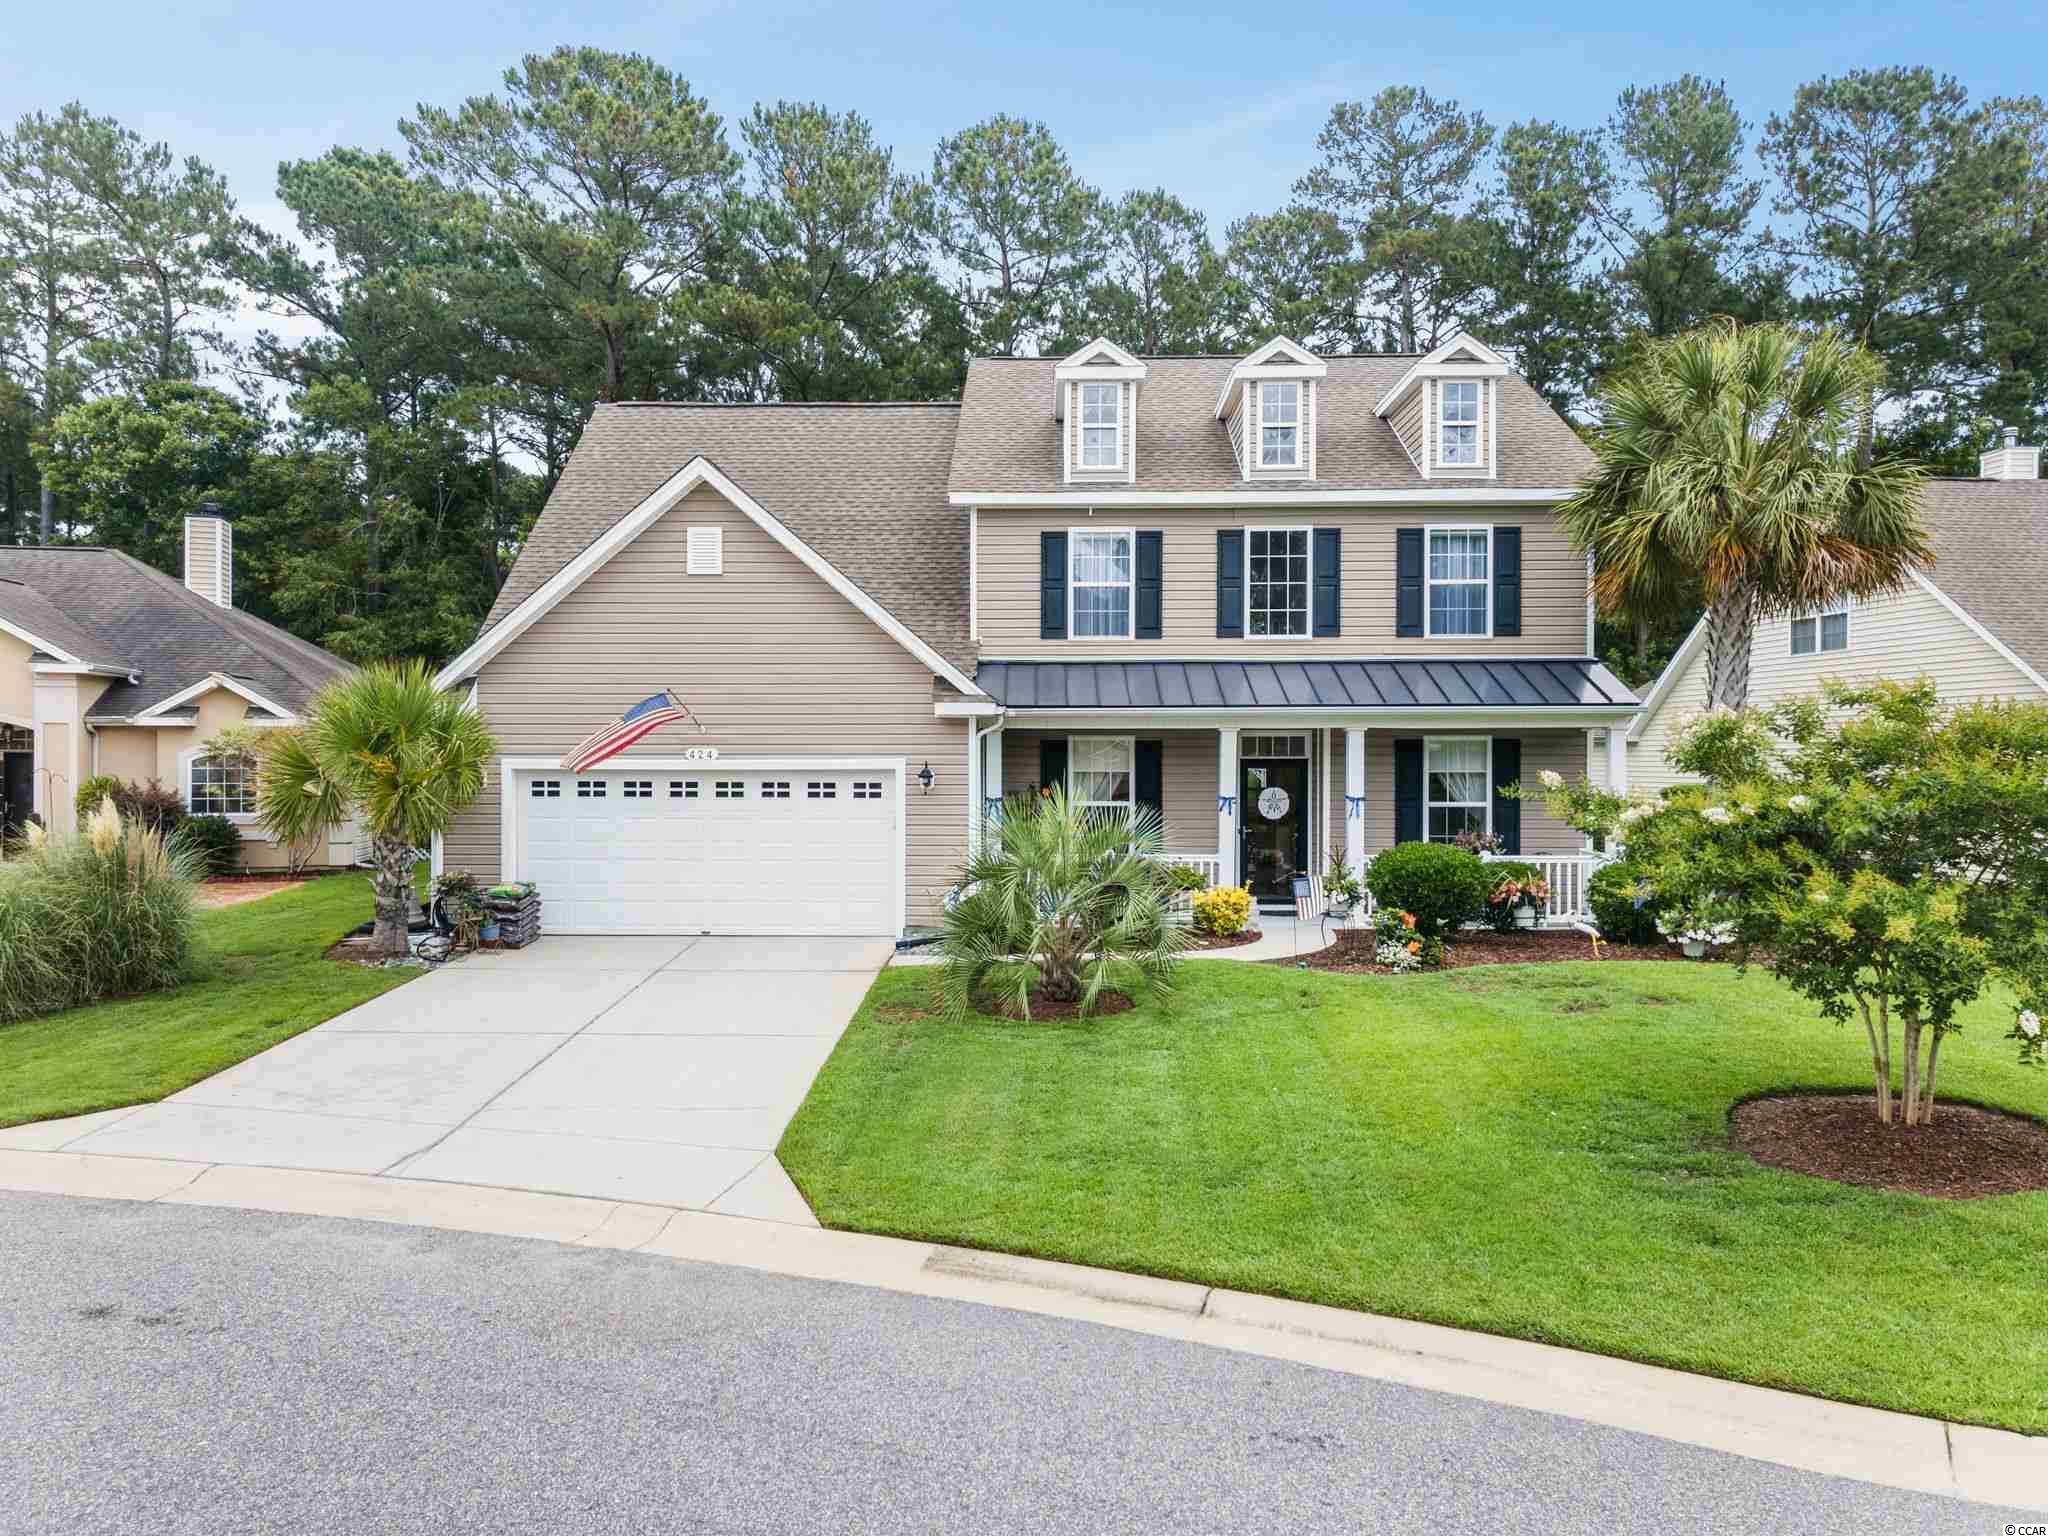 Don't miss this amazing opportunity to own a 5Bd/3.5 Bath home on the golf course at Arrowhead.  The curb appeal with lush landscaping and inviting front porch is just the beginning.  As you enter into the 2 story foyer you are greeted with high ceilings, lots of windows and natural light highlighting the beautiful wood floors. A den/formal living room and a formal dining room with plenty of space for a butlers pantry lead to the expansive 2 story living room.  Entertaining will be a joy with your large kitchen complete with a work island, breakfast bar, silestone counter tops, 42 inch cabinets and a breakfast nook.  The first floor Master Suite offers lots off privacy and gorgeous golf course views of the 7th hole of the Lakes course.  A large walk in closet and ensuite bath w/ a 5 foot walk in shower and dual sinks provide a spa like experience.  Upstairs you will discover a second Master Suite with a full bath and 3 additional bedrooms along with another full bath.  Can you find the door leading to a third floor walk up attic?  This ample secret hide away (27' by 15') can be converted to a 6th bedroom or additional living space.  Plenty of closets and an attached oversized 2 car garage allow for plenty of storage.  Fresh paint throughout and all new carpet on the second story along with new custom shades are waiting for you.  Call today!